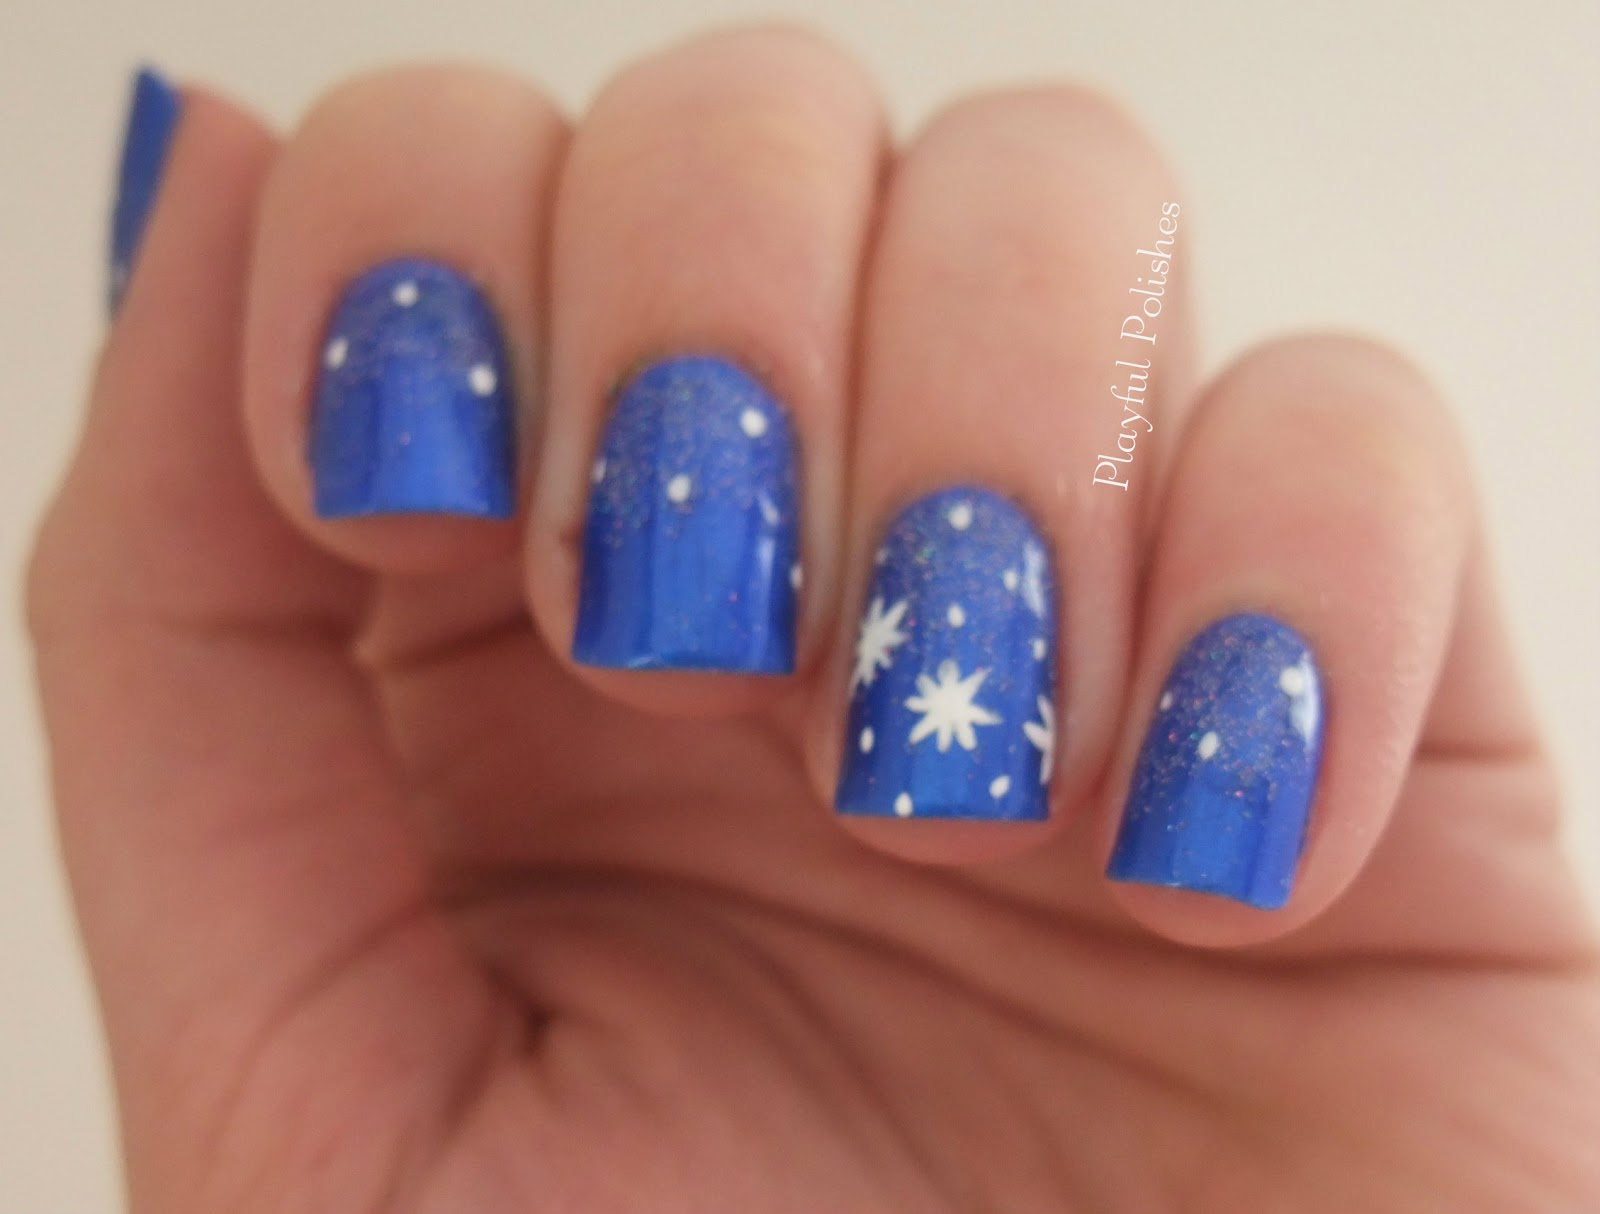 Playful Polishes January Nail Art Challenge Day 16